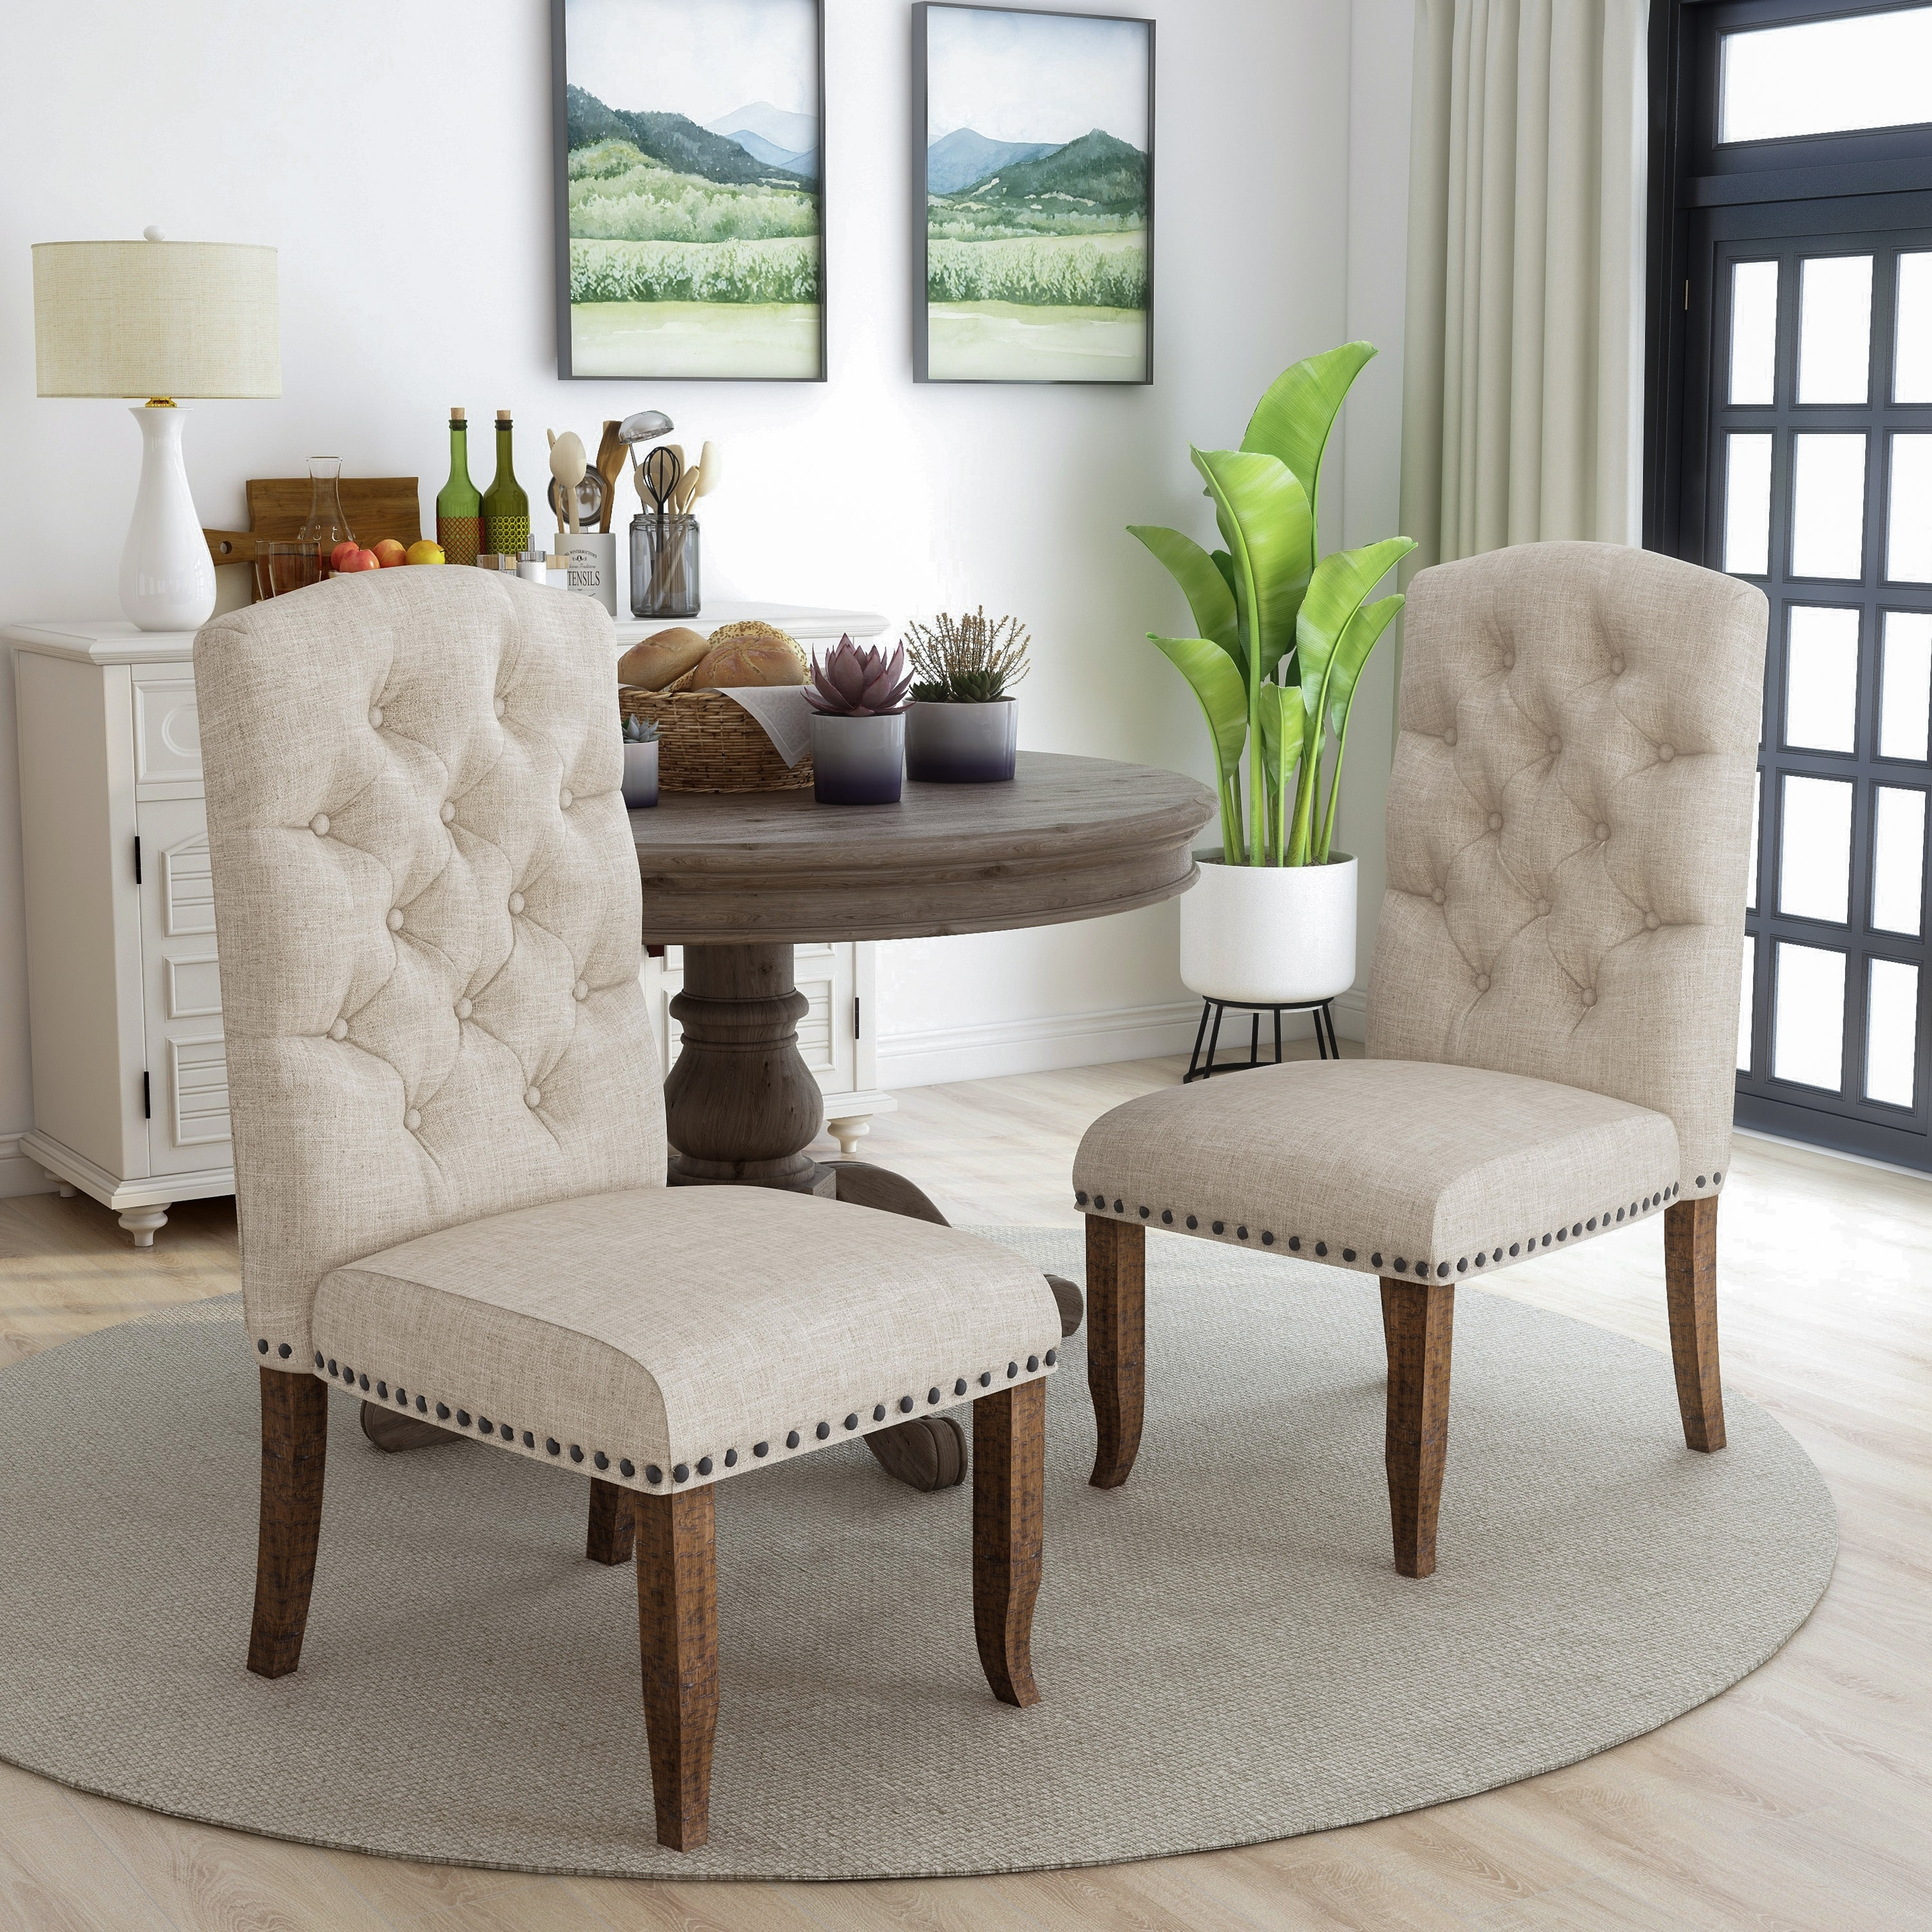 Furniture Of America Tufted Upholstered Dining Chairs Set Of 2 Overstock 20234596